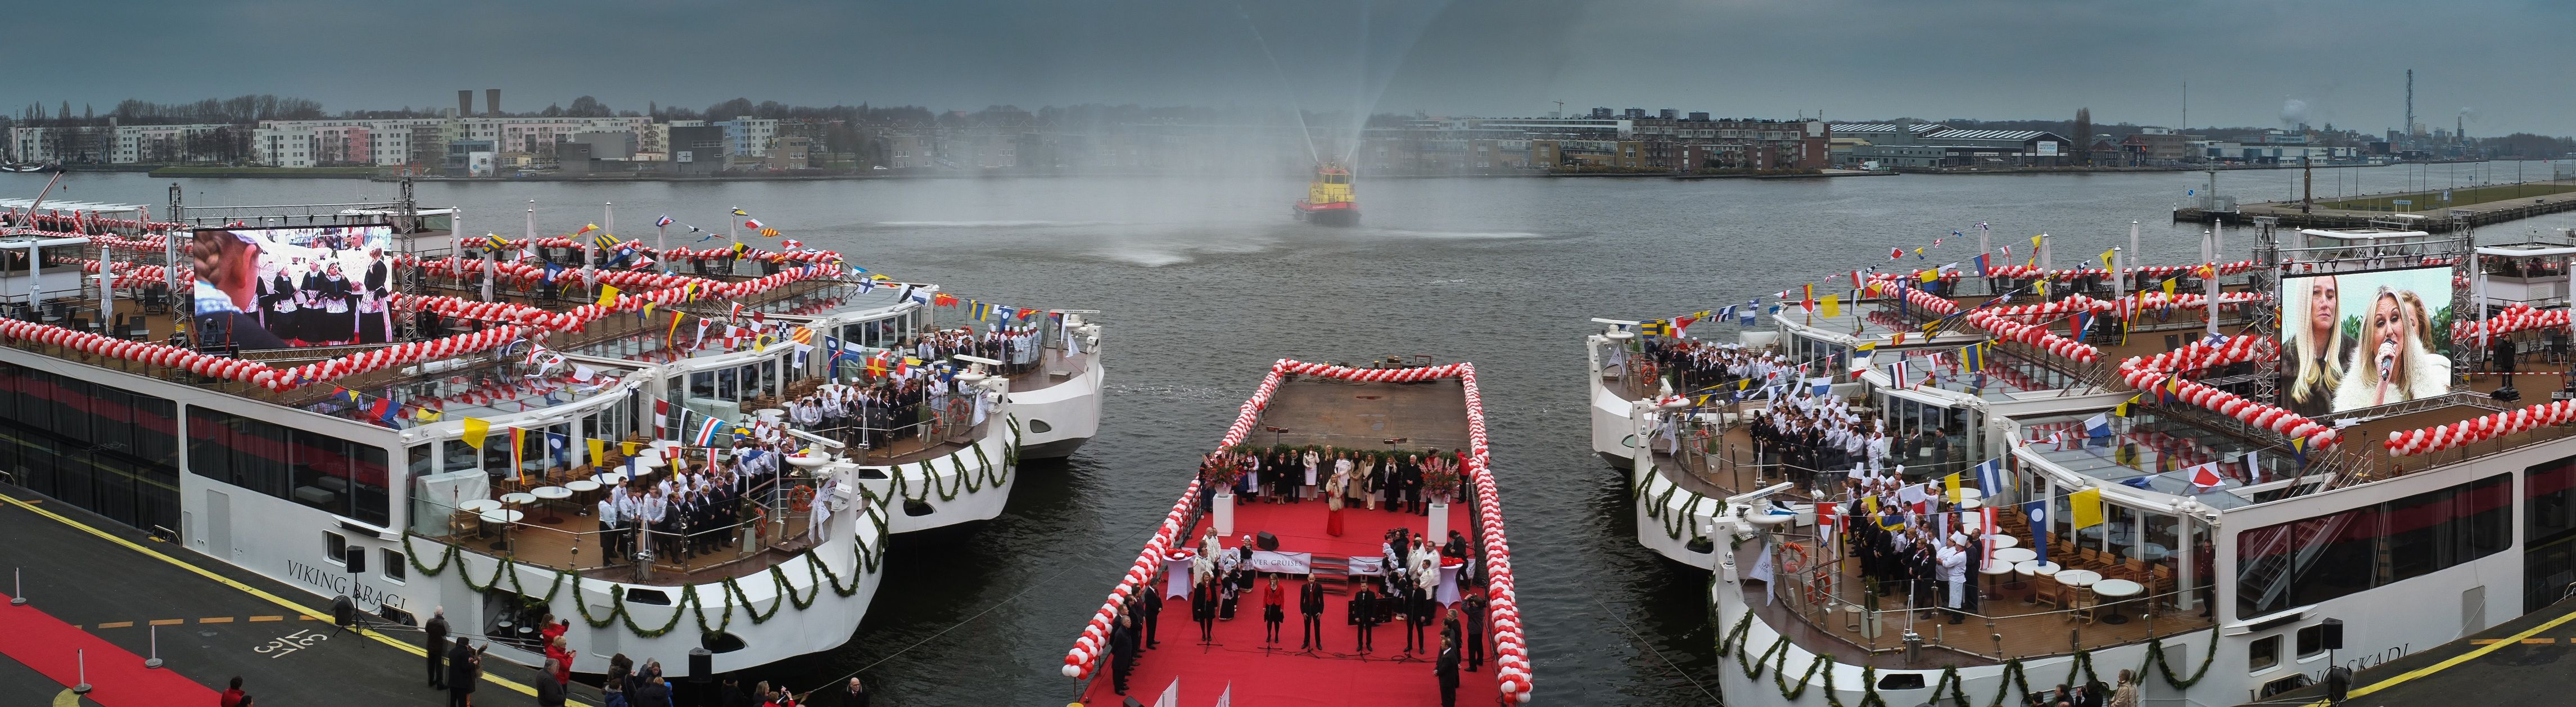 Four Of The 10 New Viking Longships That Were Christened In